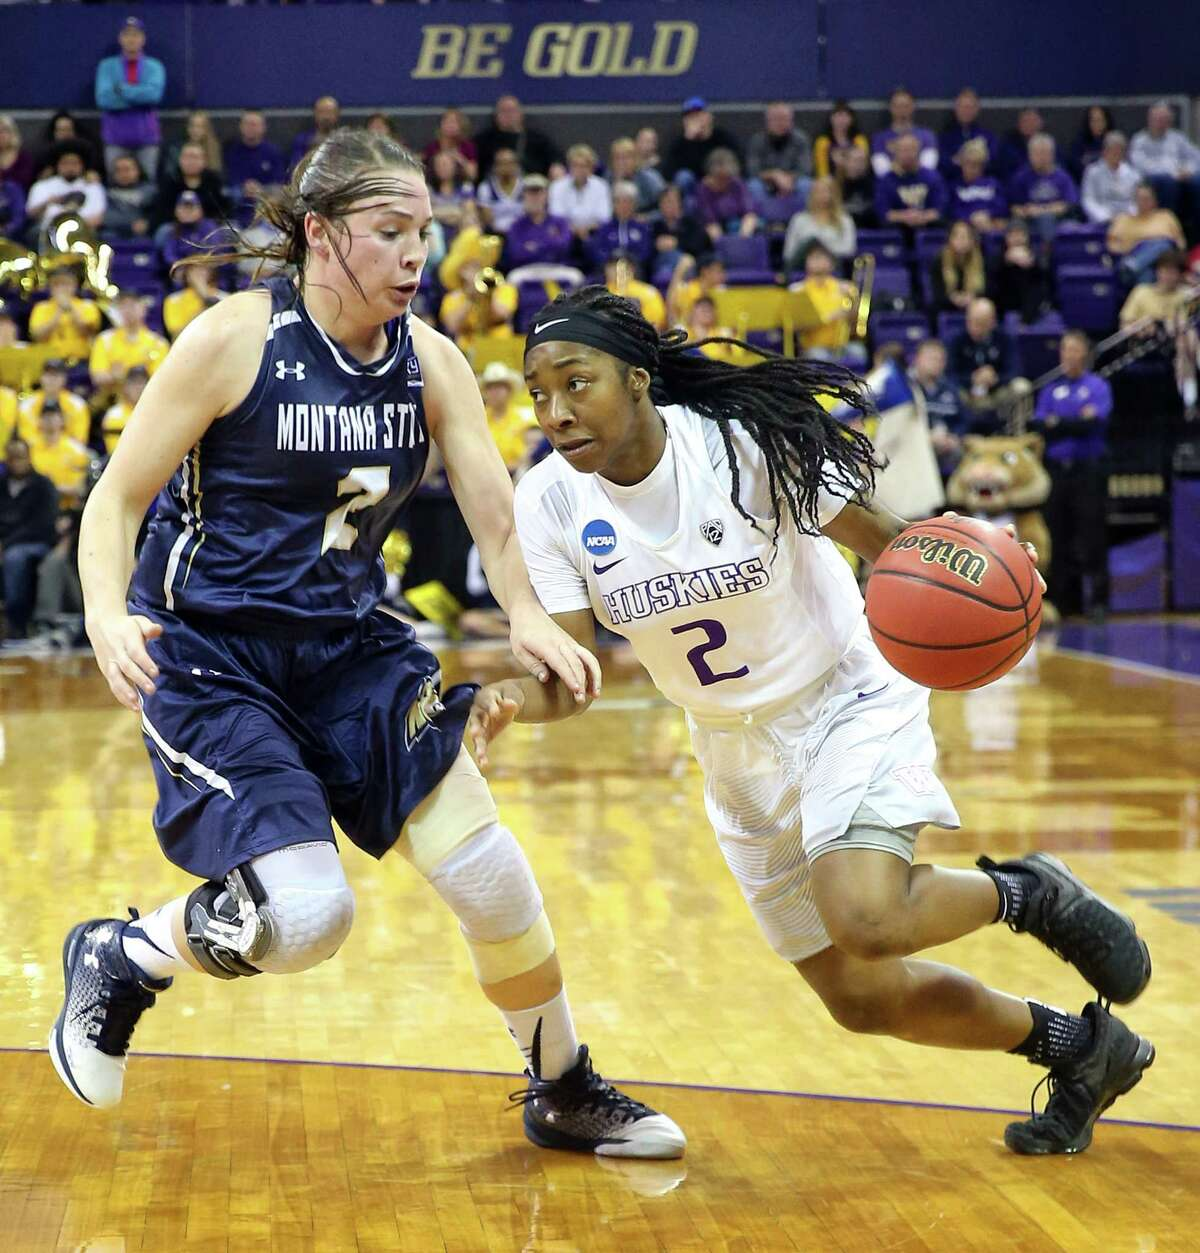 UW's Aarion McDonald, right, drives past Montana State's Peyton Ferris.